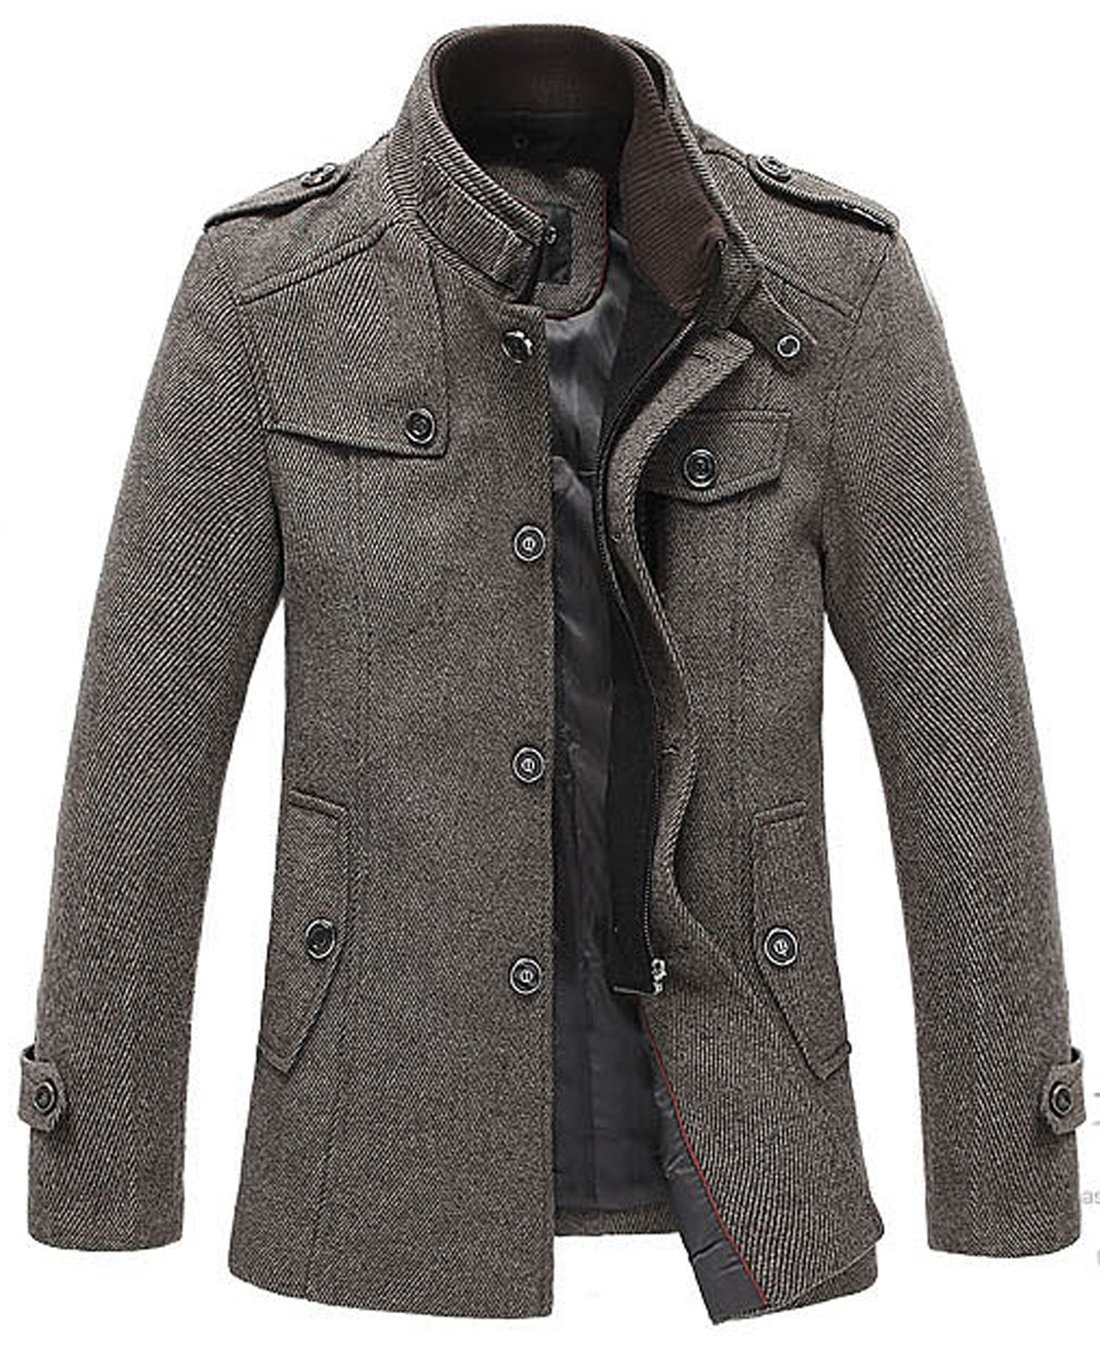 863db4adf chouyatou Men's Stand Collar Classic Pea Coat with Removable Inner ...